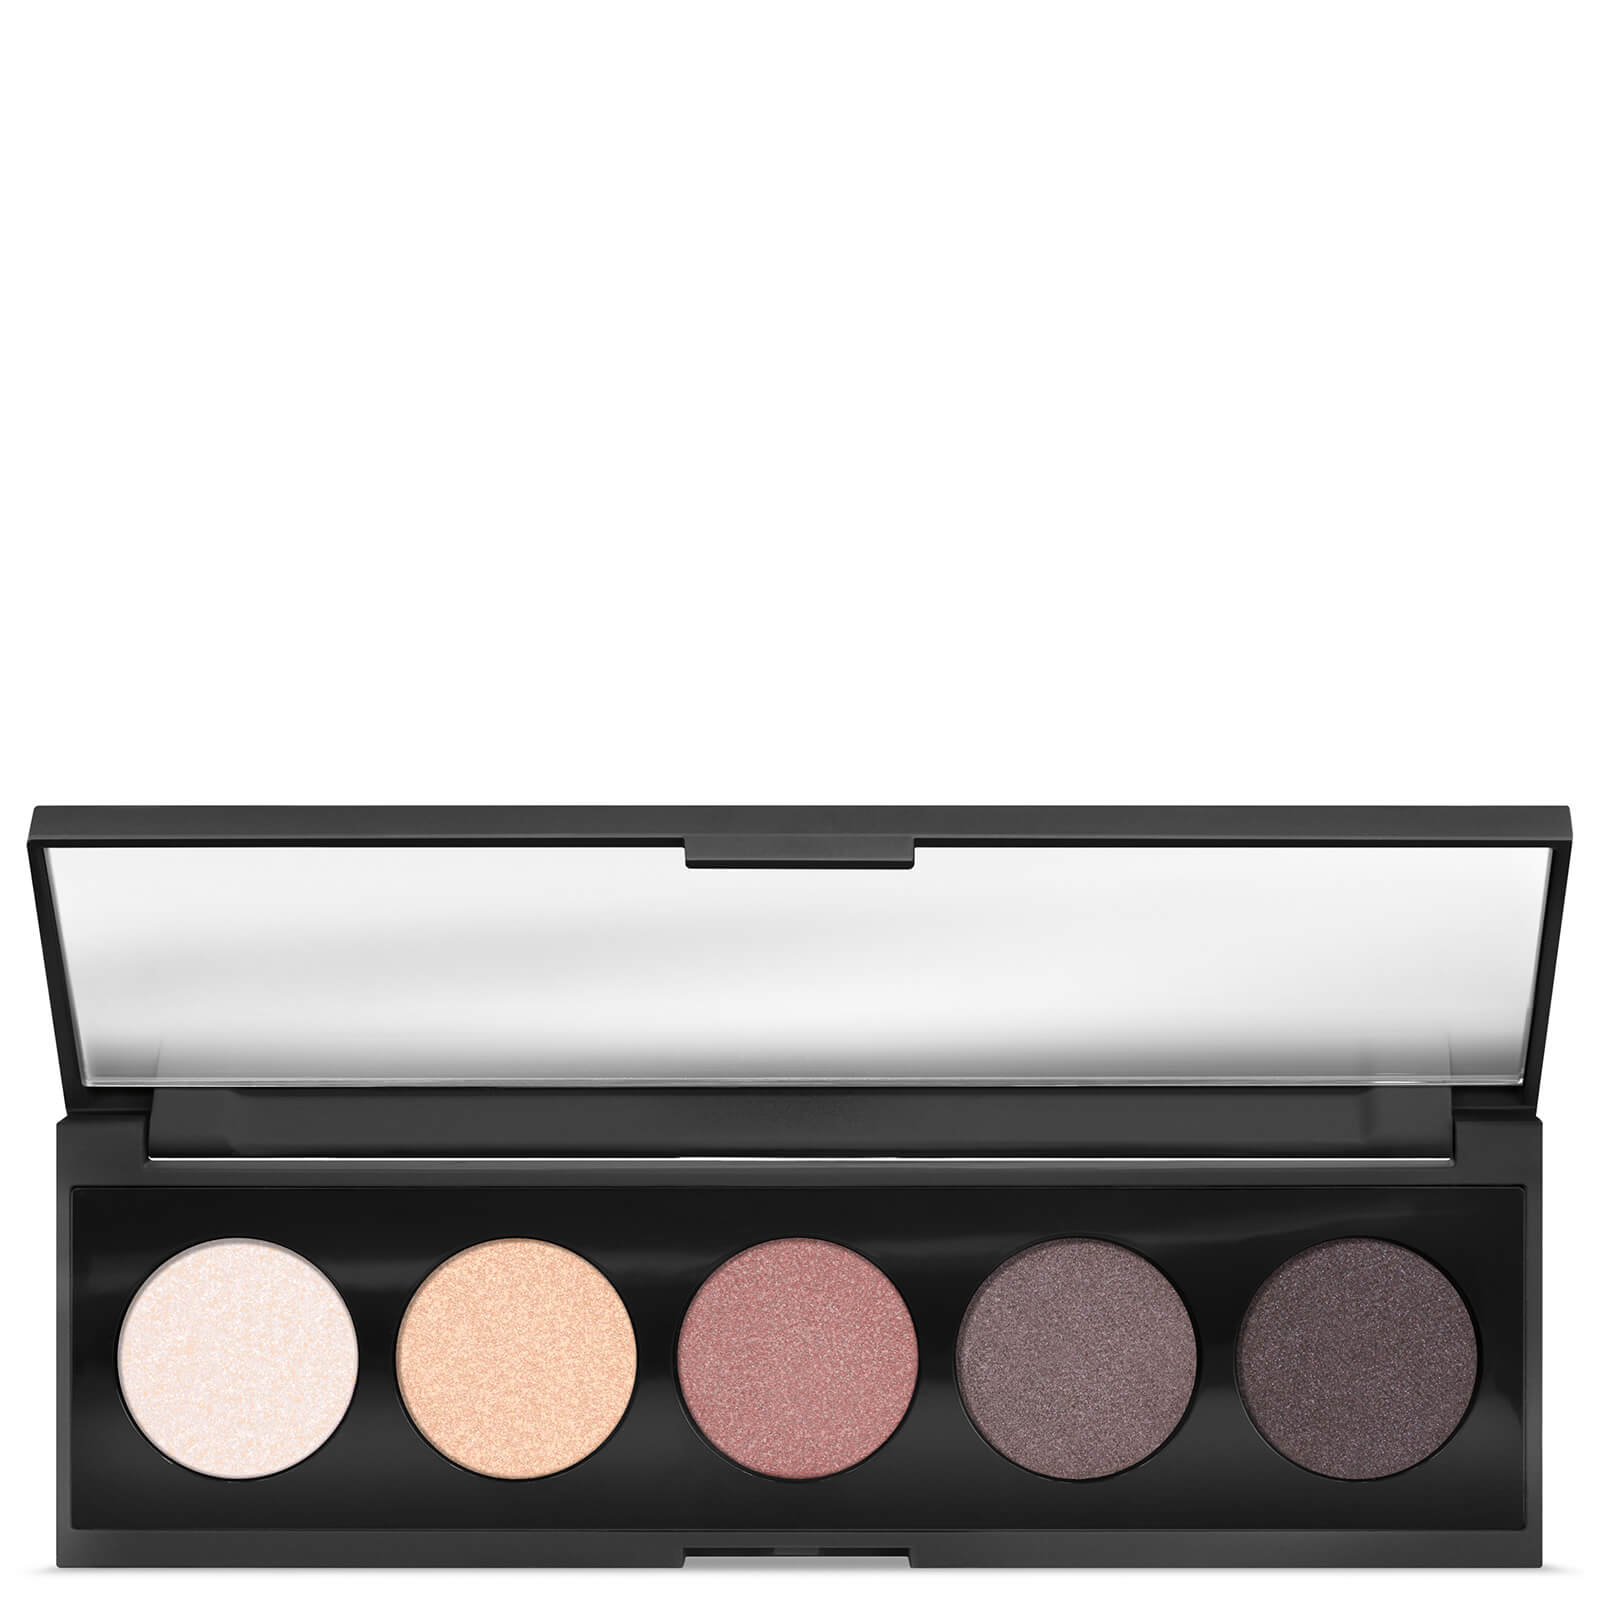 Bare minerals-Bounce & Blur Eyeshadow Palette - Dawn